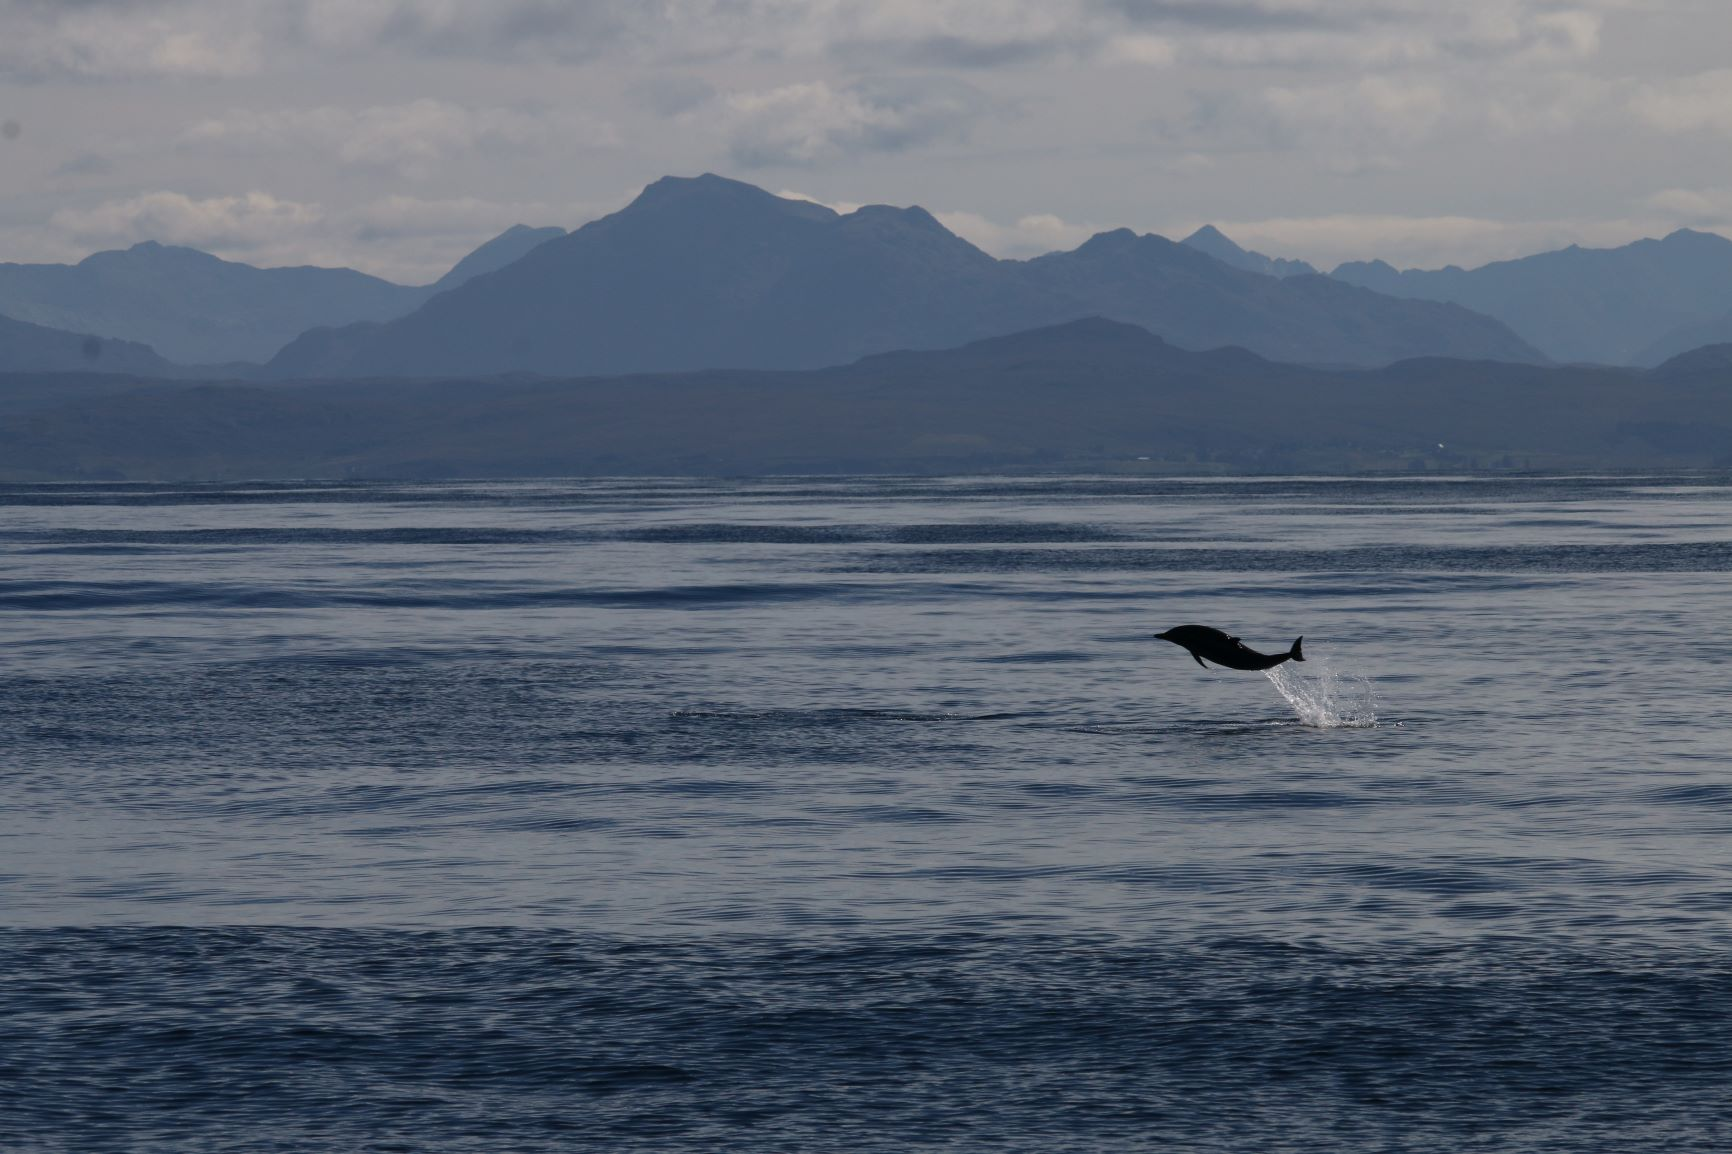 The Hebridean Whale and Dolphin Trust have received funding as part of the £1.3million share